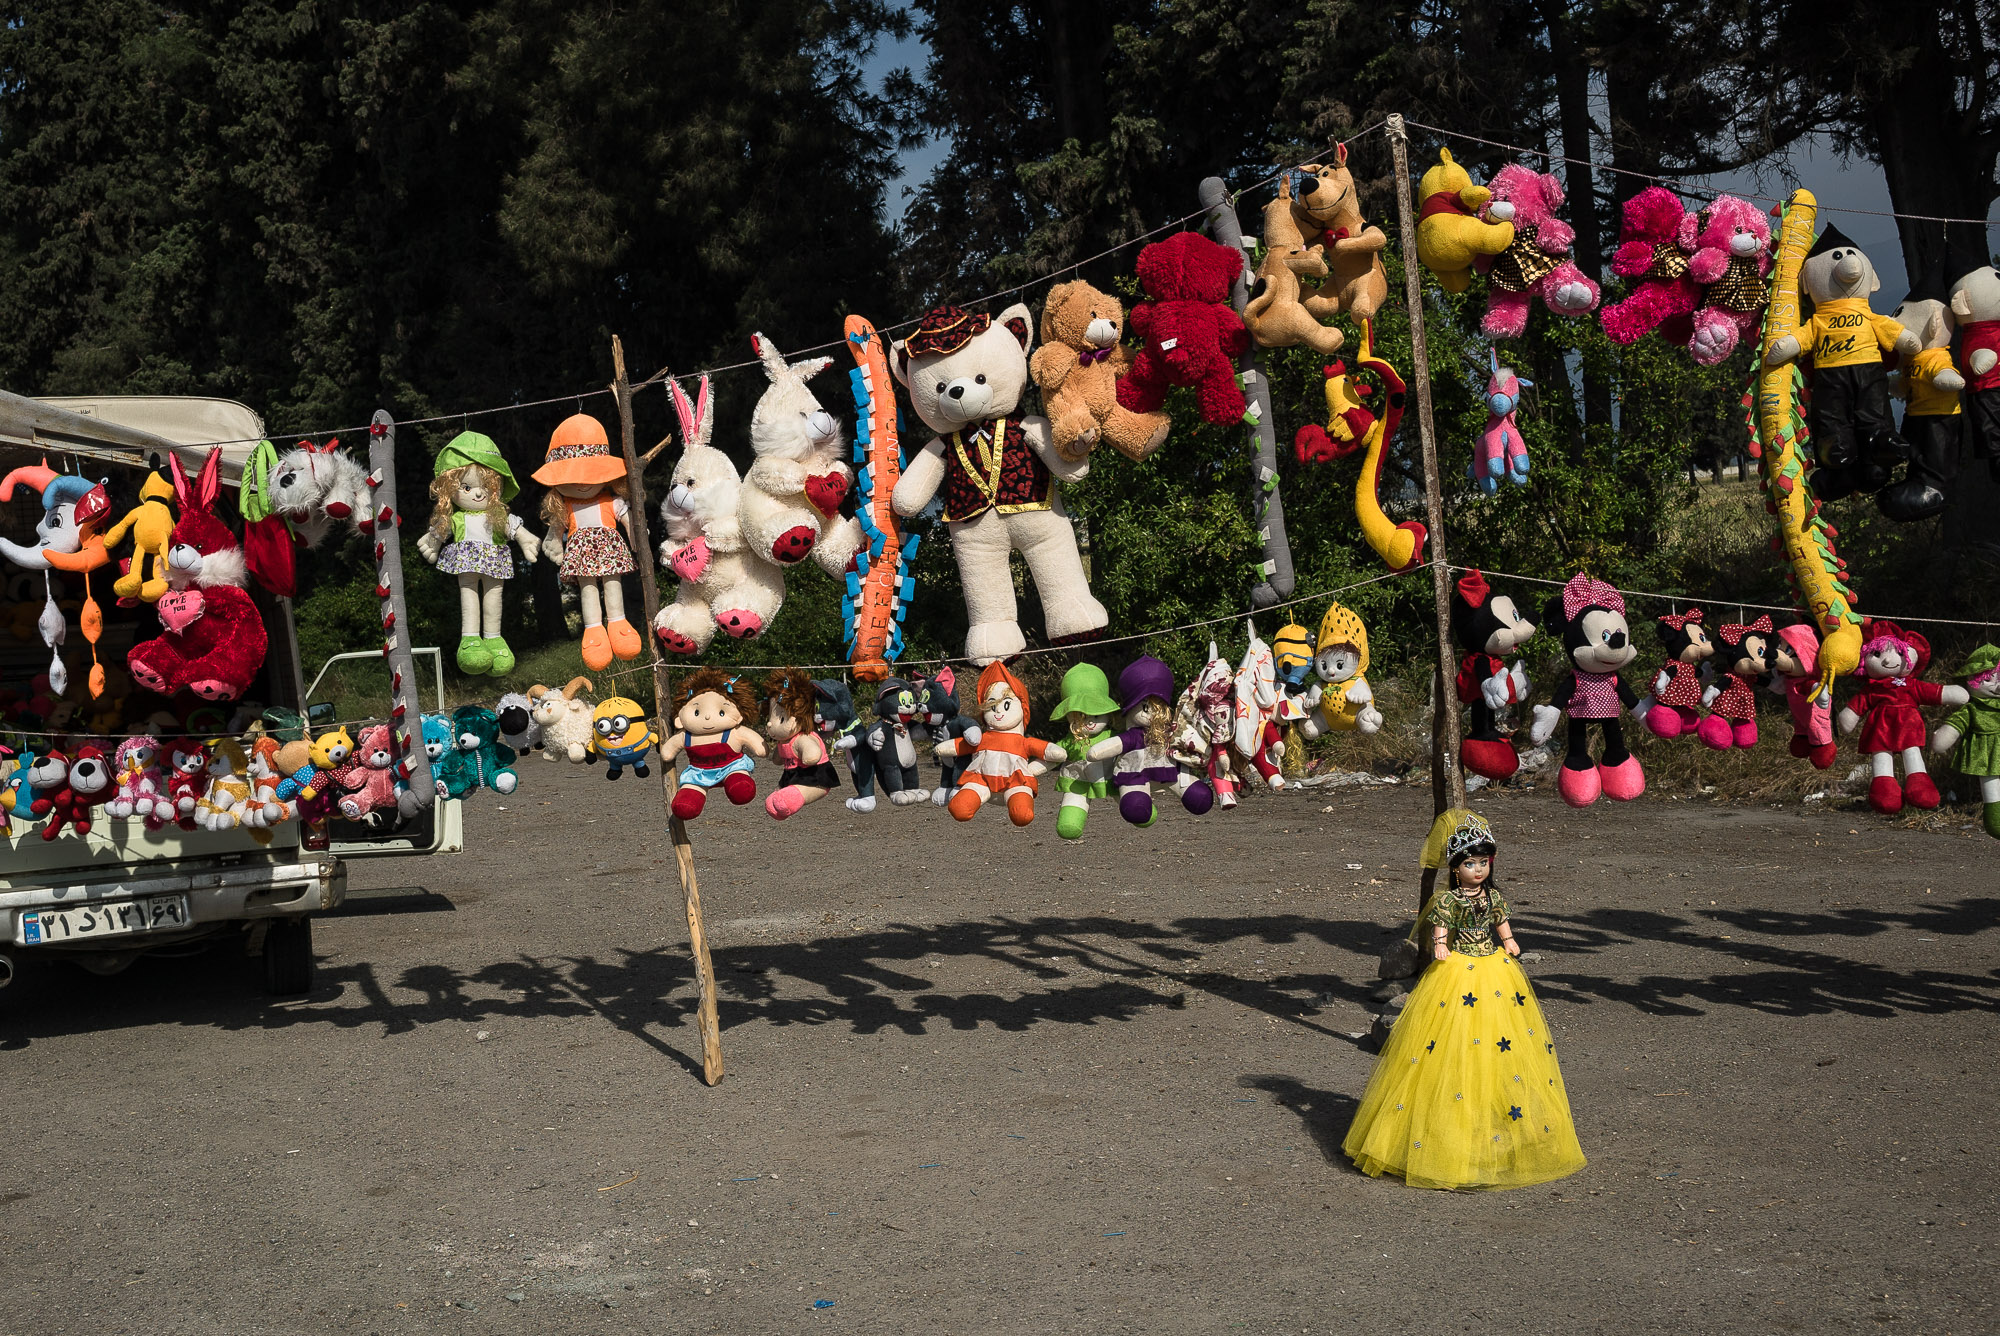 toys for sale on the roadside